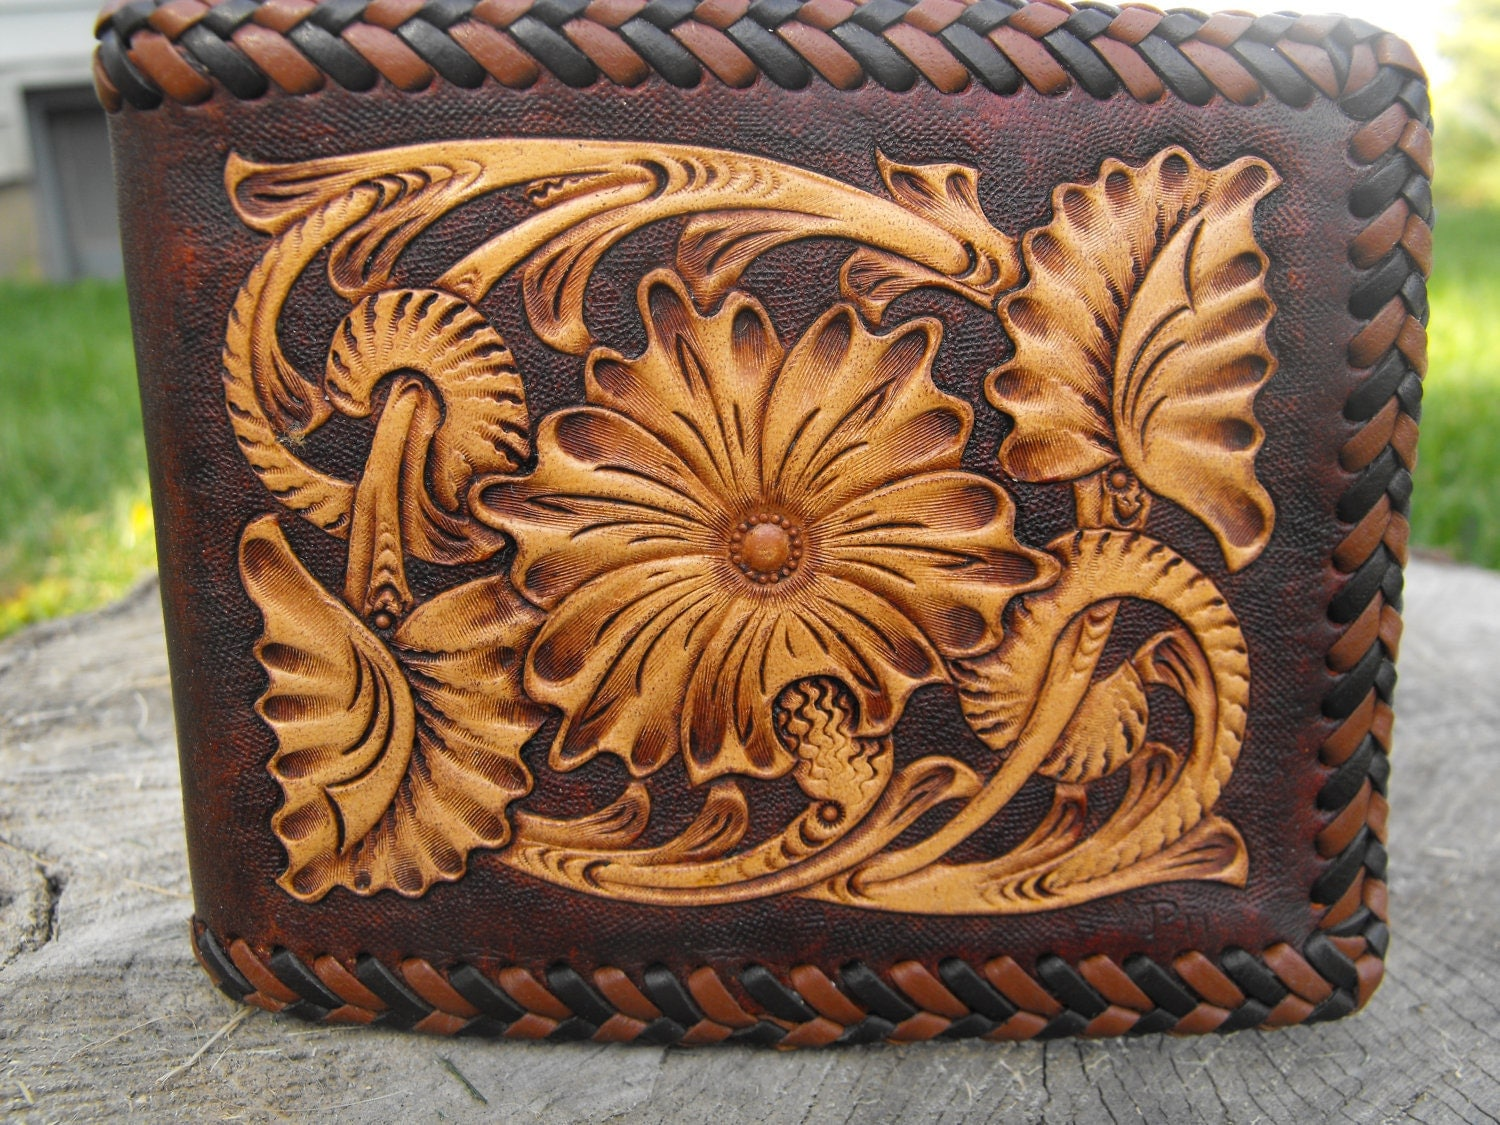 Hand tooled leather sheridan wallet